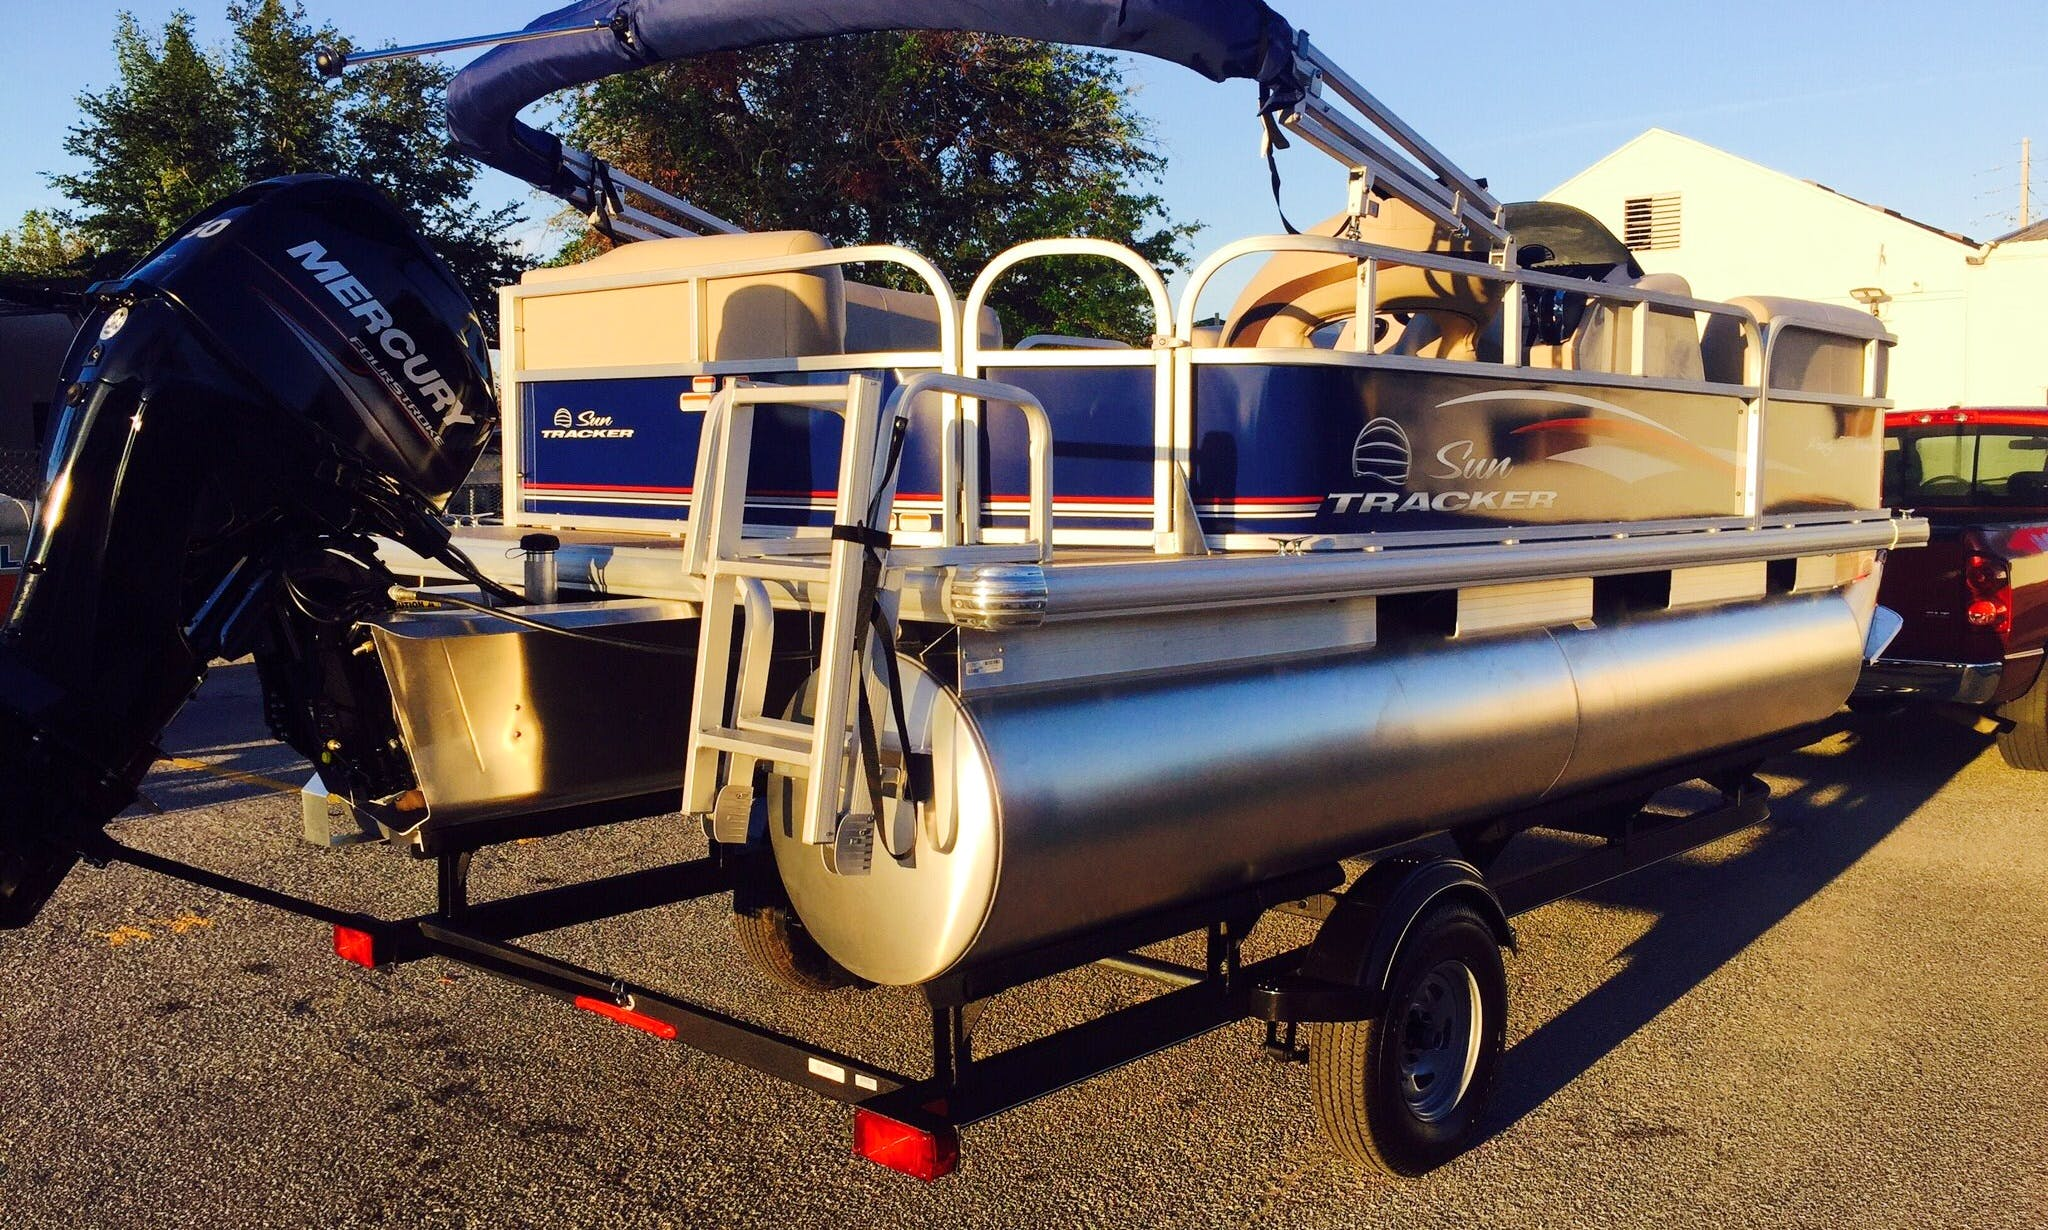 Sun Tracker Party Barge Pontoon for Rent in Kissimmee - Boats delivered to you!